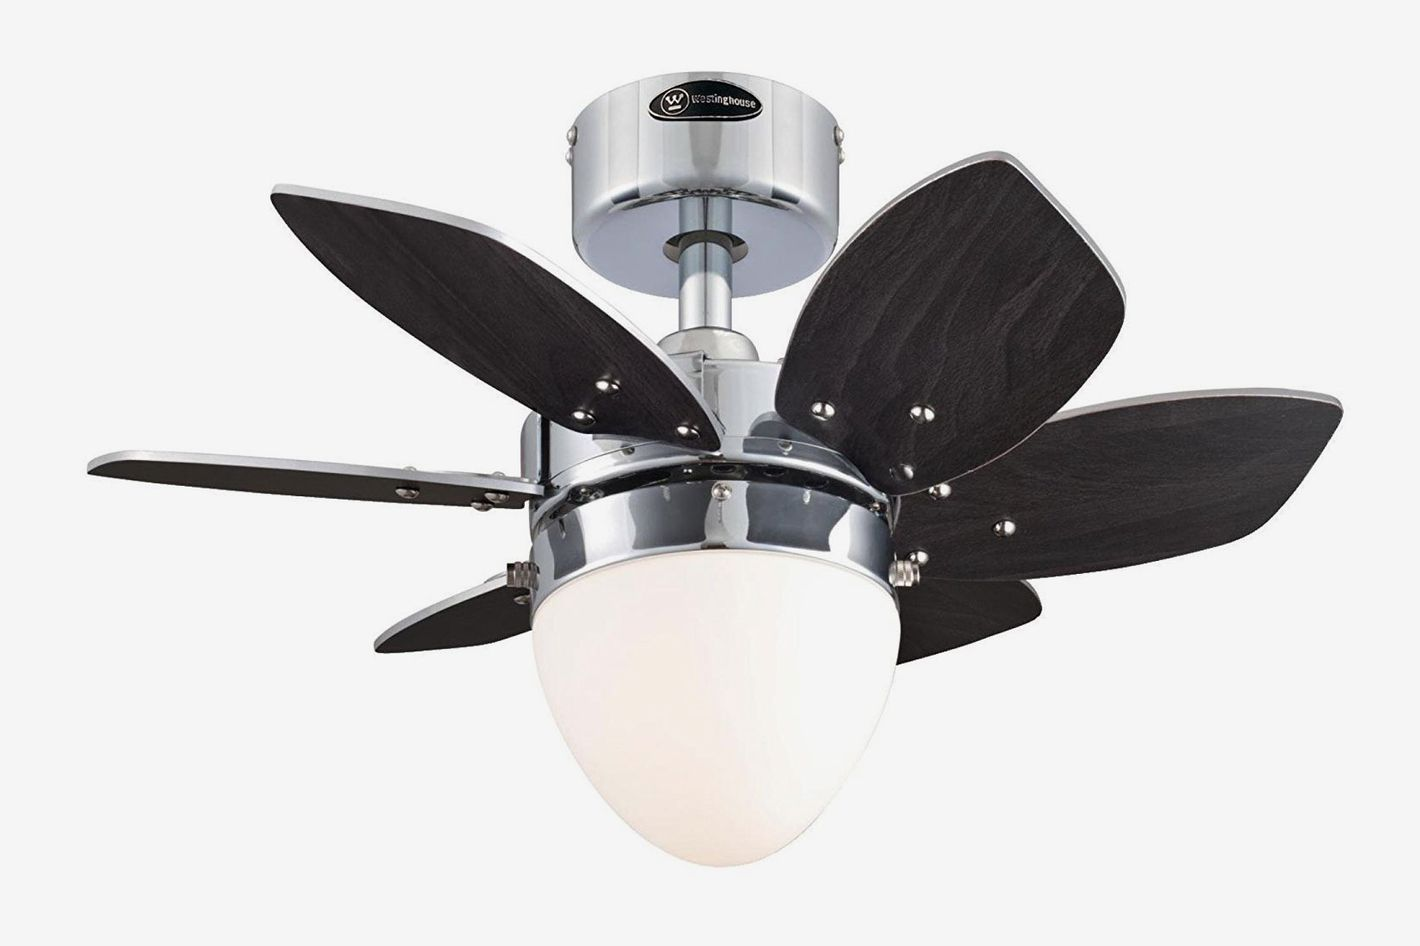 Westinghouse Origami Single-Light 24-Inch Reversible Six-Blade Indoor Ceiling Fan